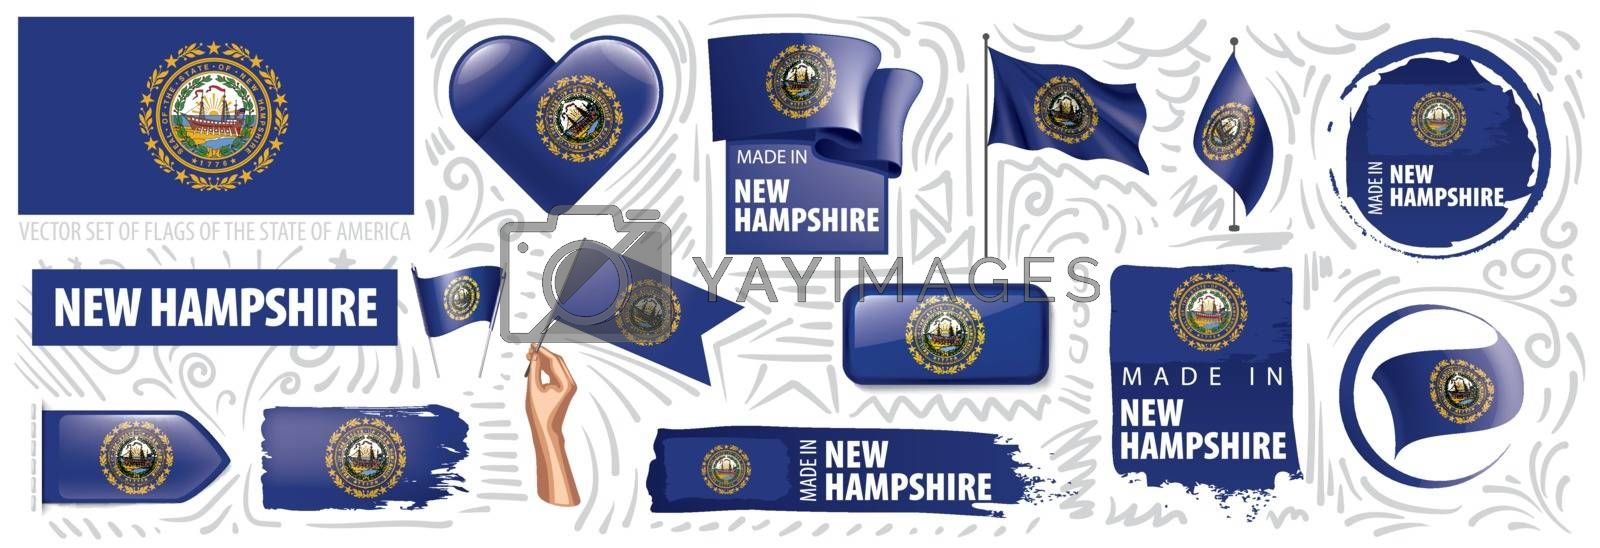 Vector set of flags of the American state of New Hampshire in different designs.